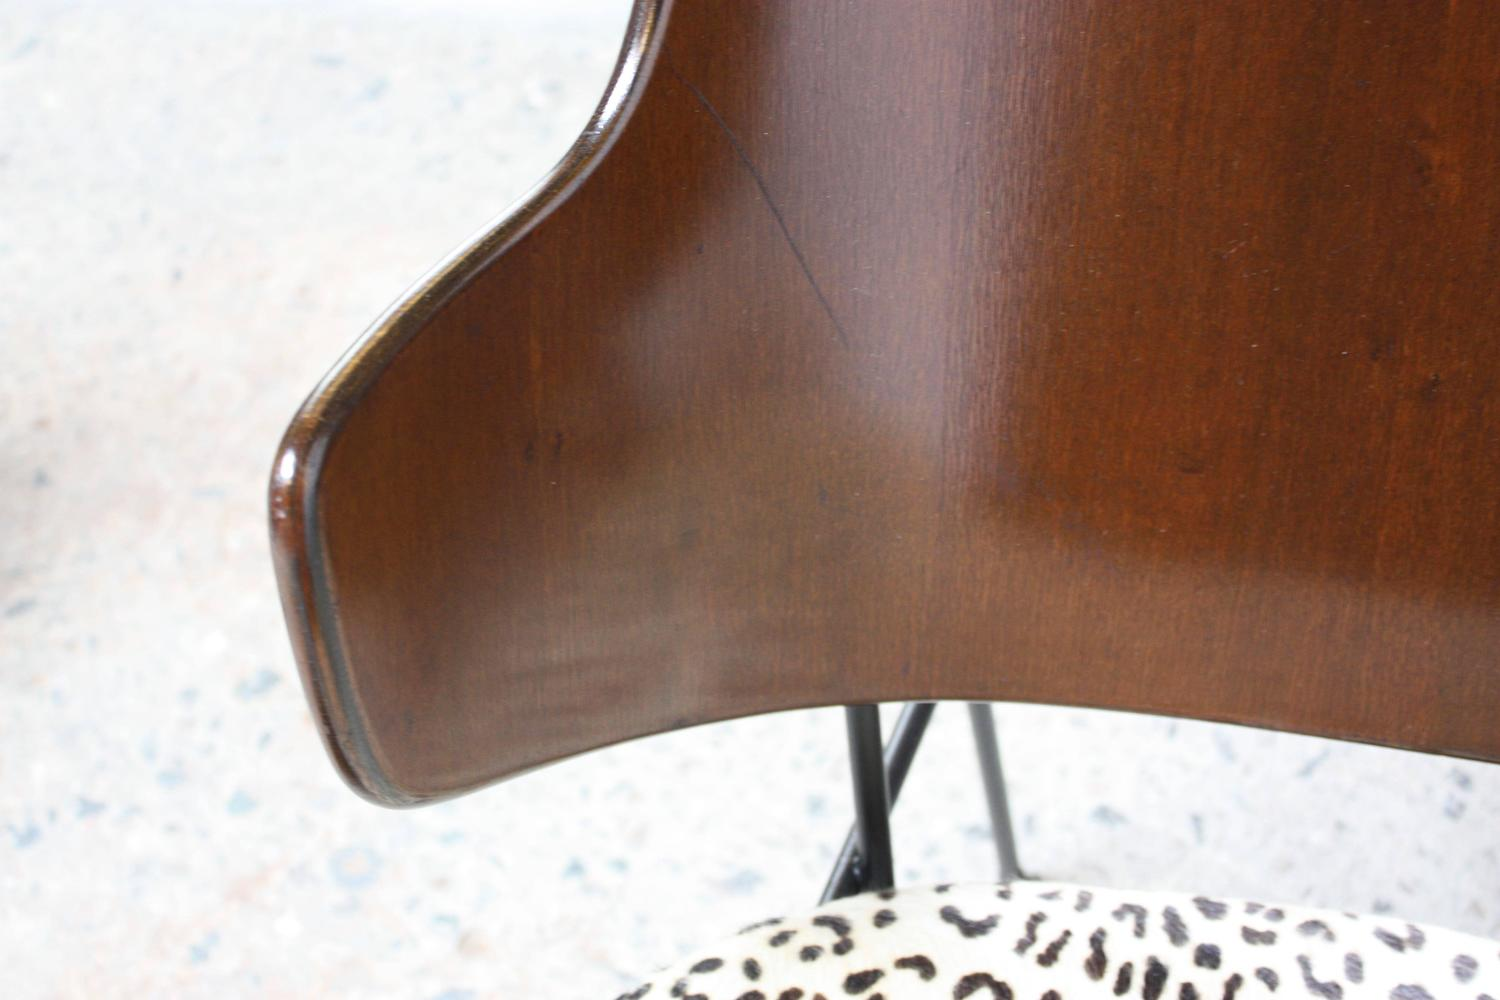 Home / Shop / Chairs / Ottomans / Rare IB Kofod Larsen Penguin Chairs And  Ottoman In Leopard Print Appaloosa Hair